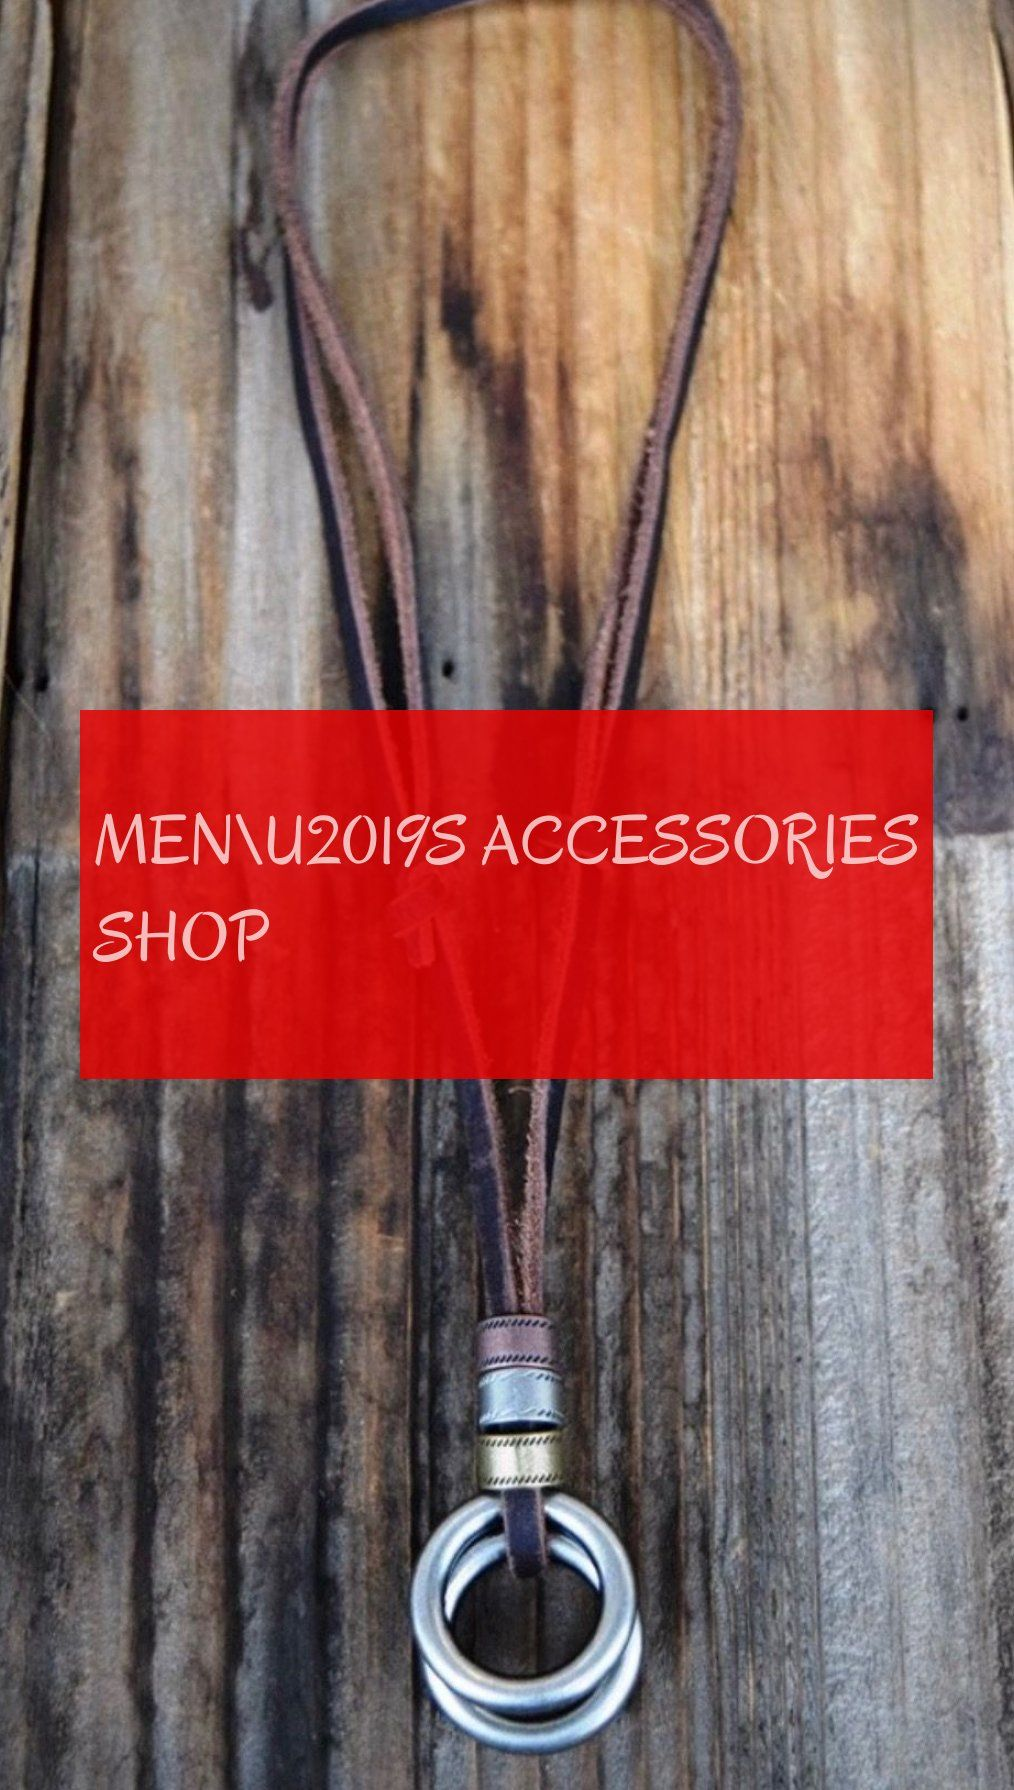 Men\u2019S Accessories Shop Herren Accessoires Shop